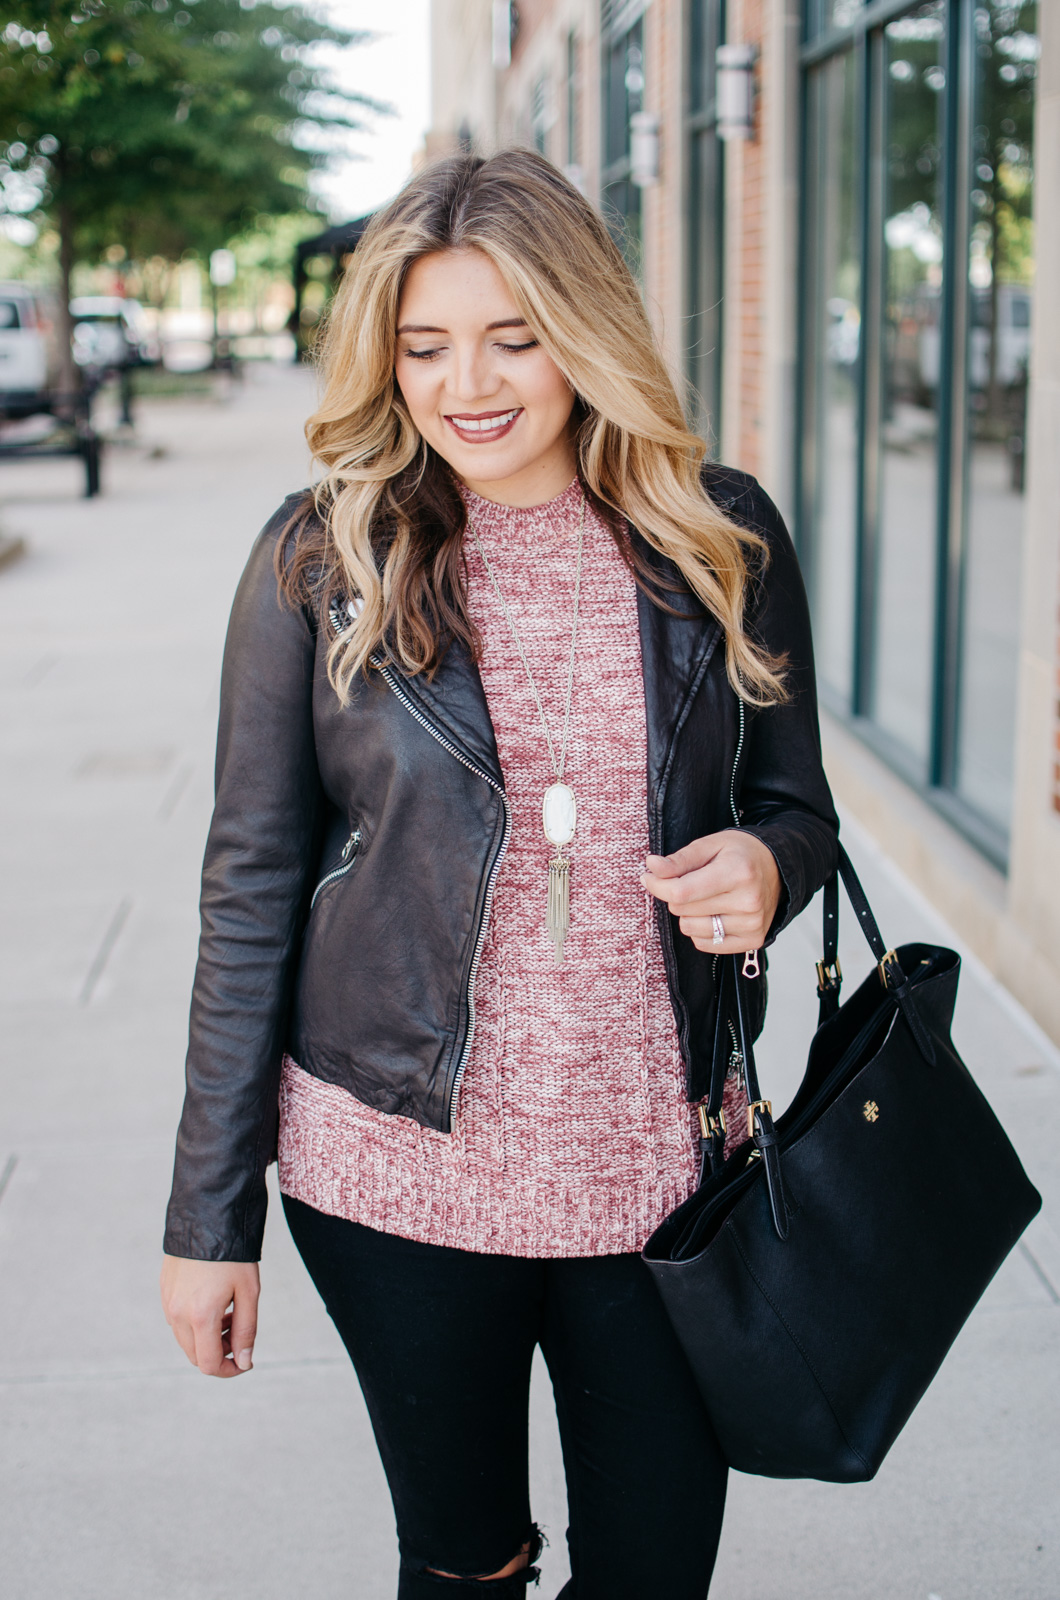 sweater moto jacket outfit idea - how wear a sweater with a leather jacket | For more Fall outfit ideas, click through to bylaurenm.com!